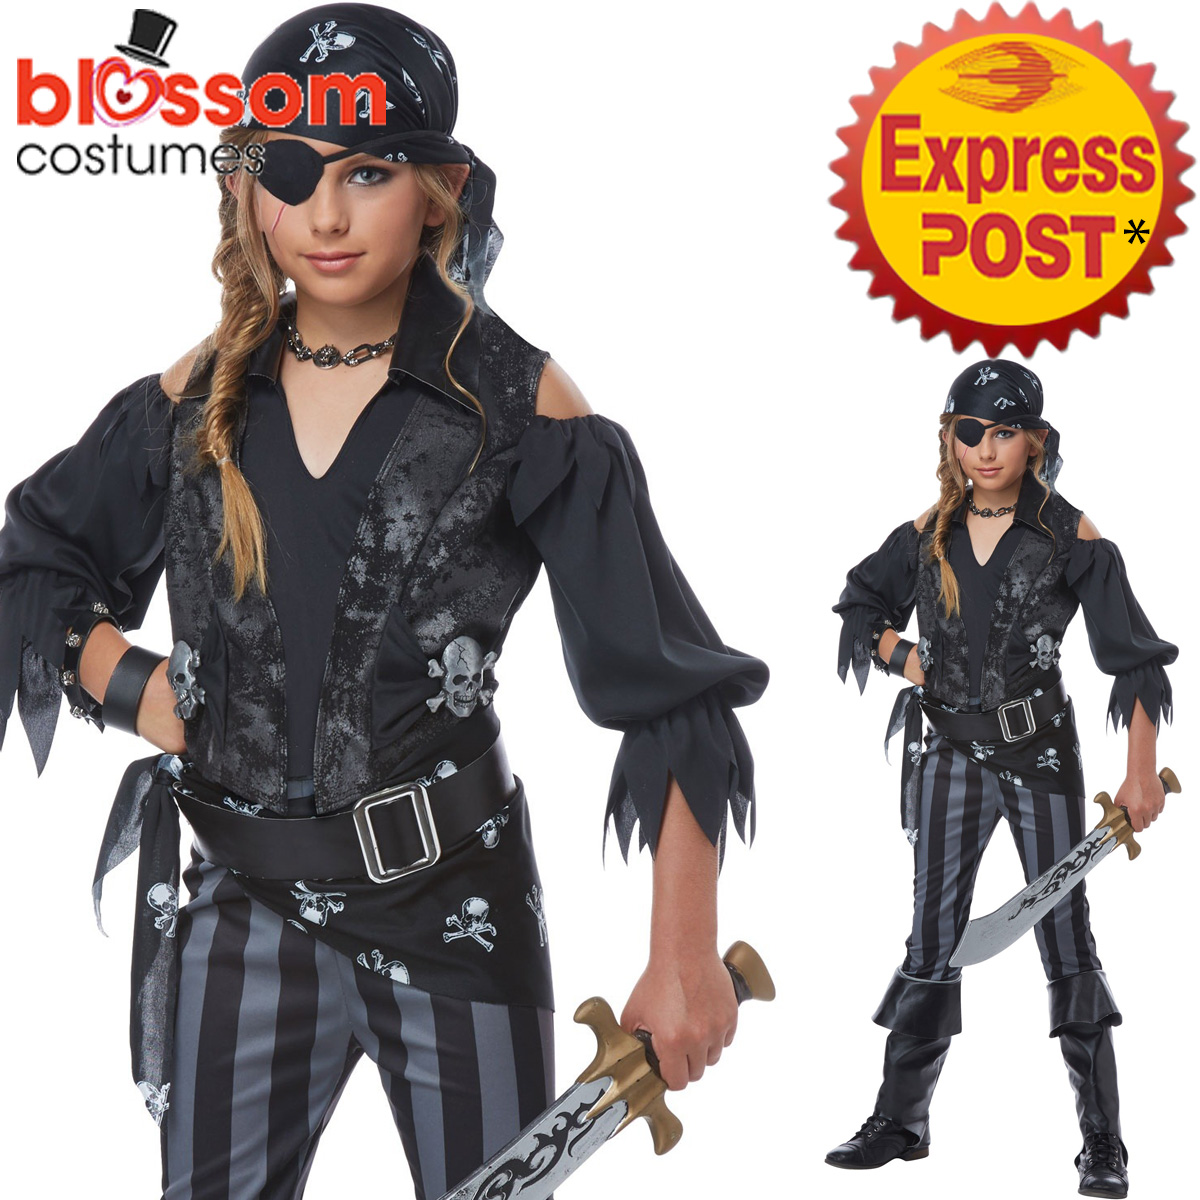 Image is loading CK1083-Rebel-Pirate-Costume-Girls-Kids-Halloween-Fancy-  sc 1 st  eBay & CK1083 Rebel Pirate Costume Girls Kids Halloween Fancy Dress Up Book ...